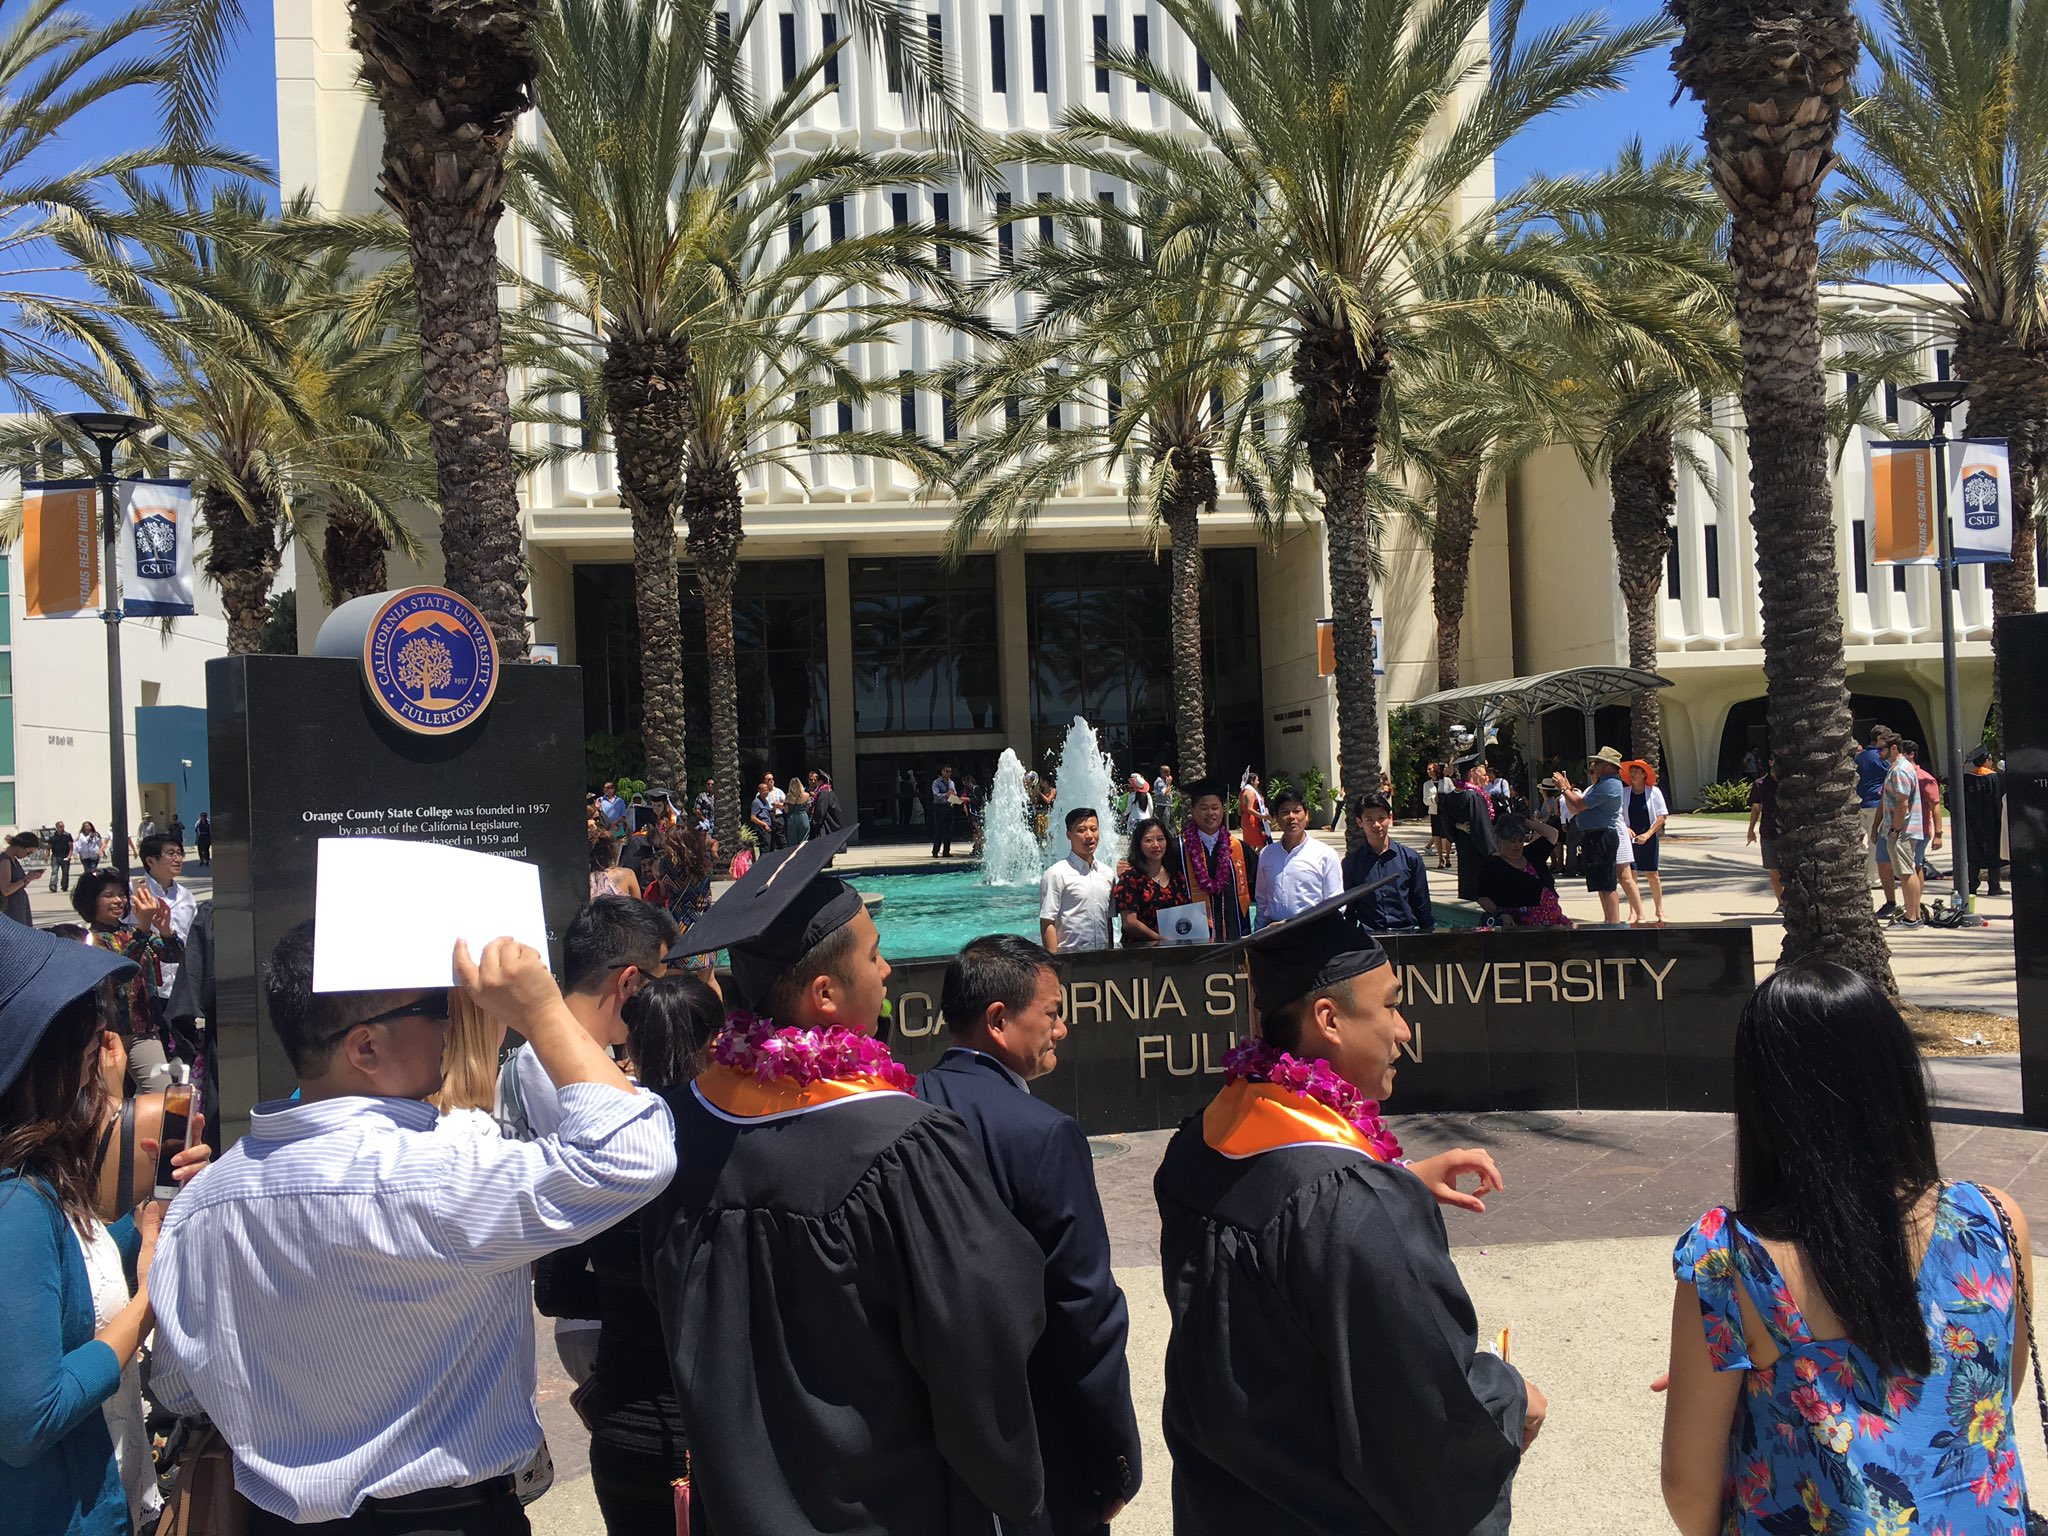 And now some photos at the fountain.  Congrats to all our grads!  #CSUF2017 #TitansReachHigher https://t.co/PILzA9psD5